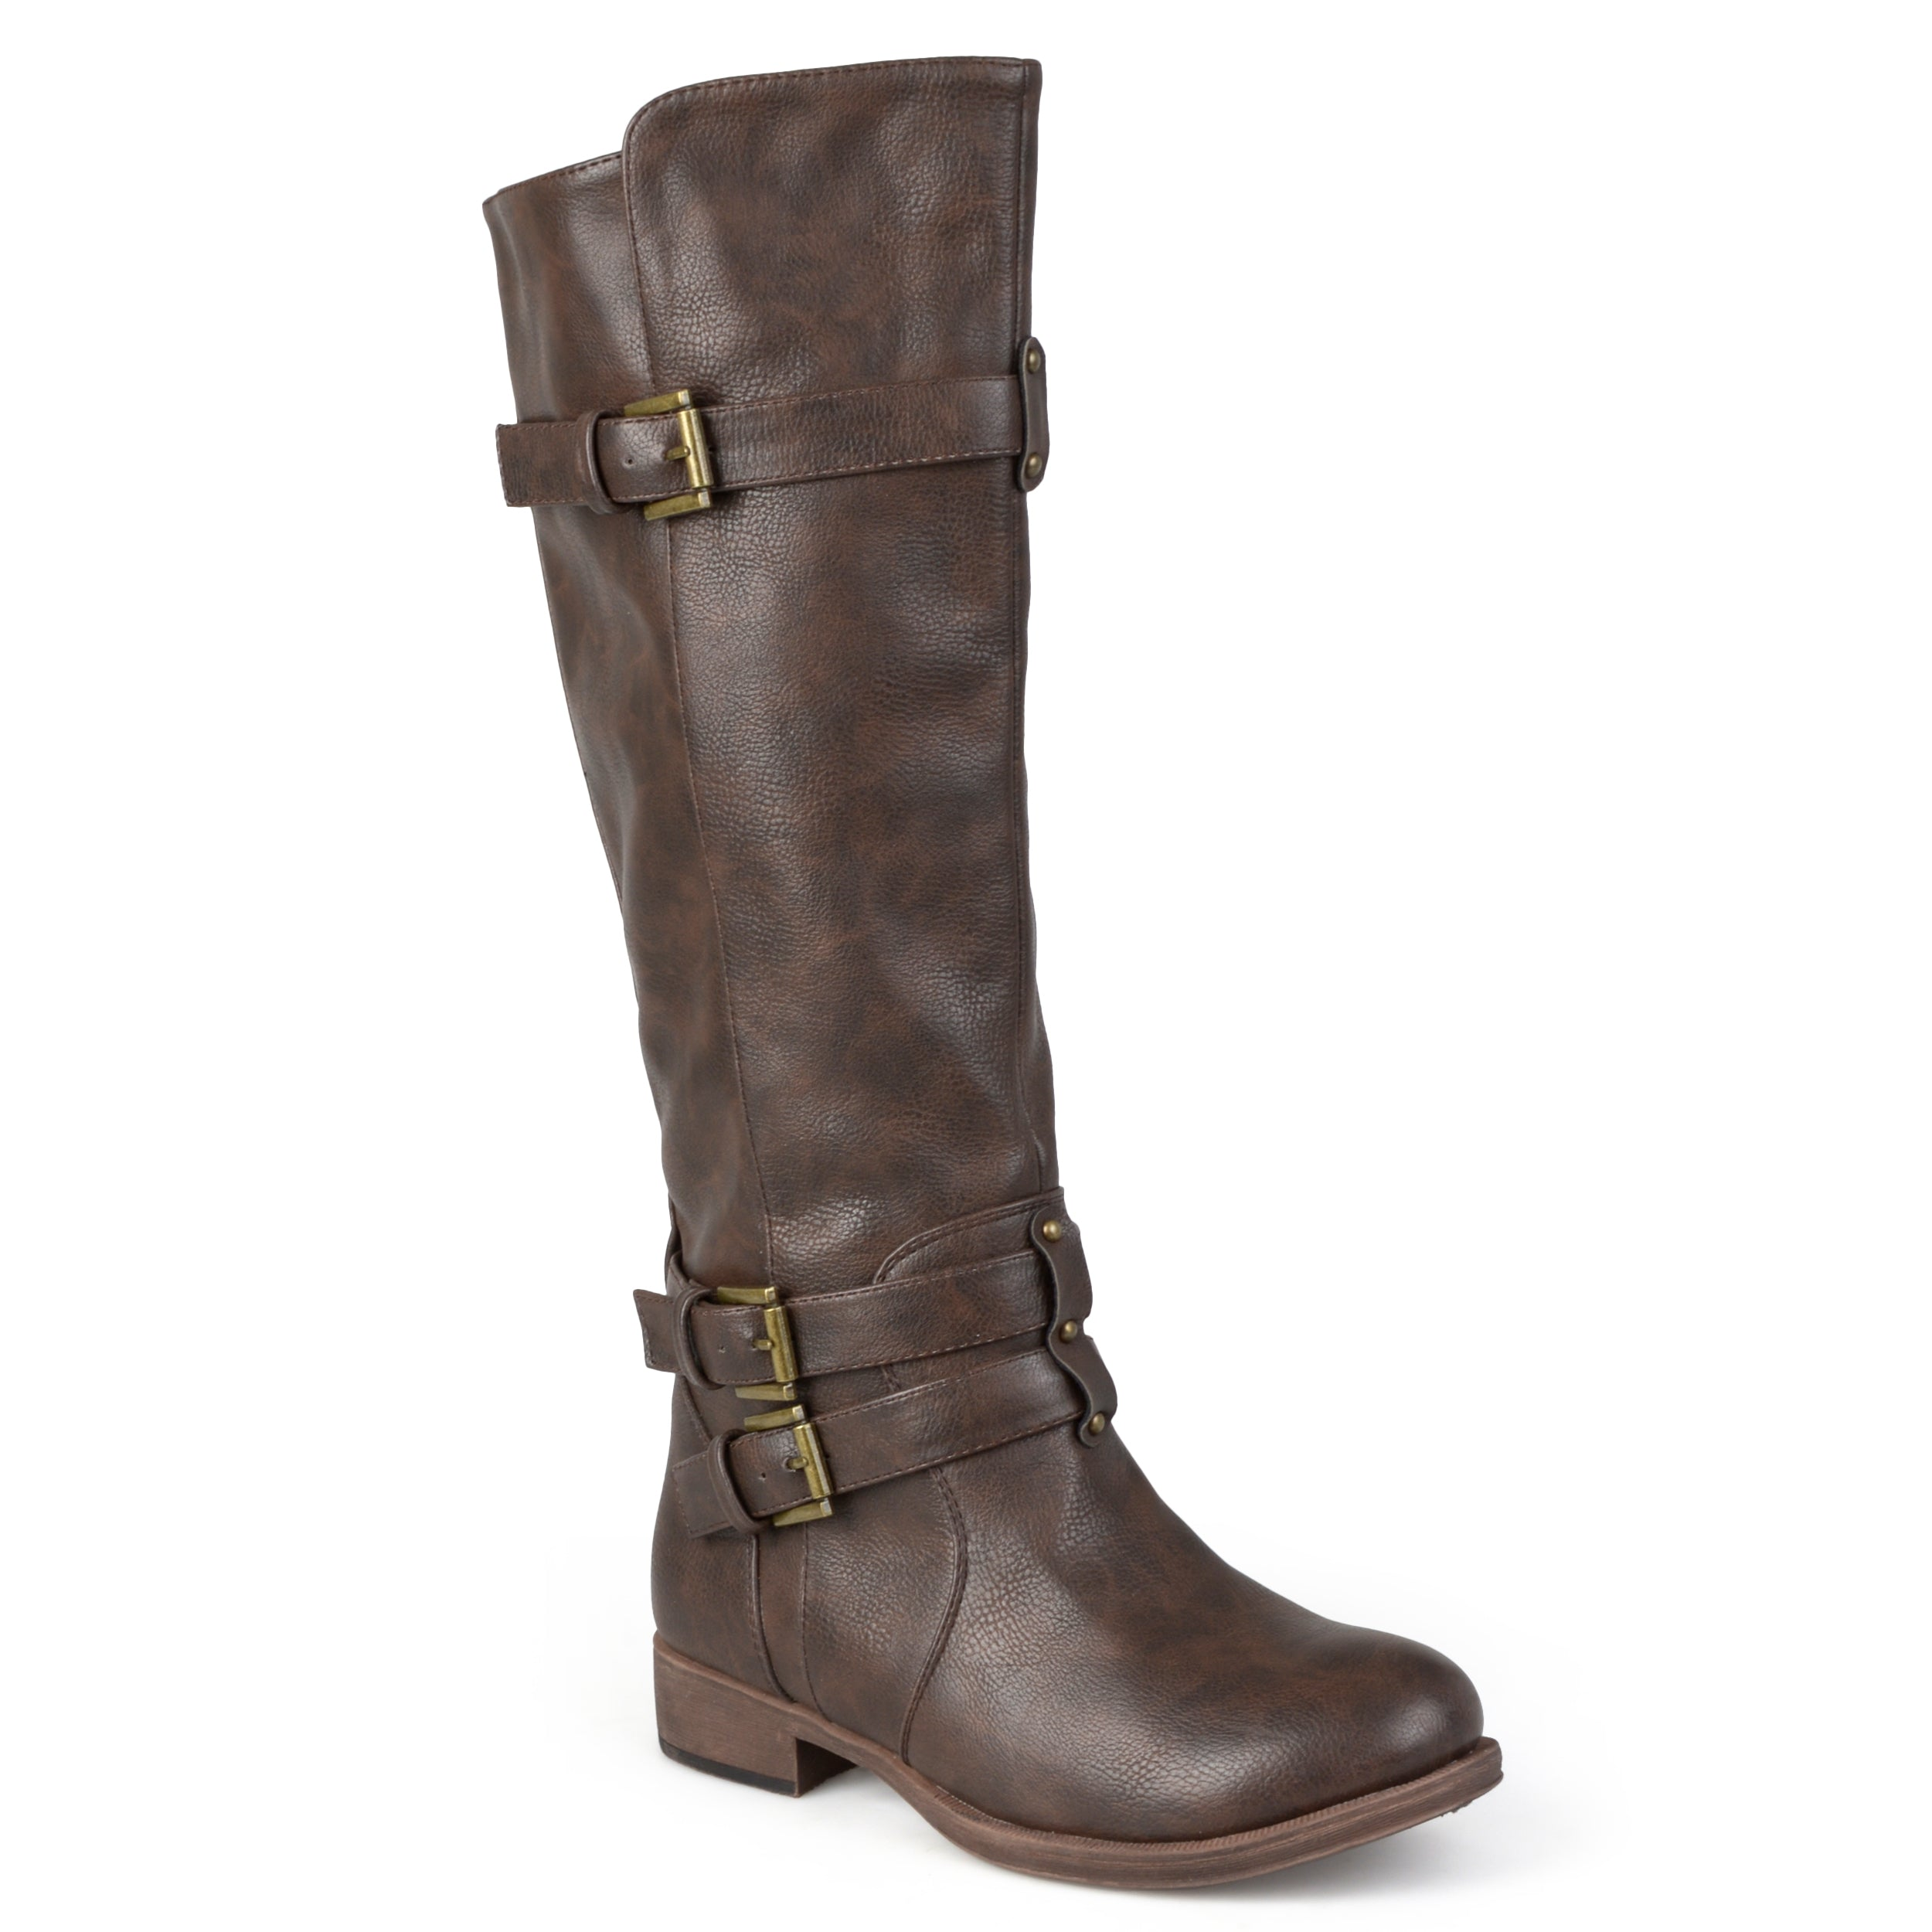 e391dba05 Brinley Co. Womens Knee-High Buckle Riding Boot